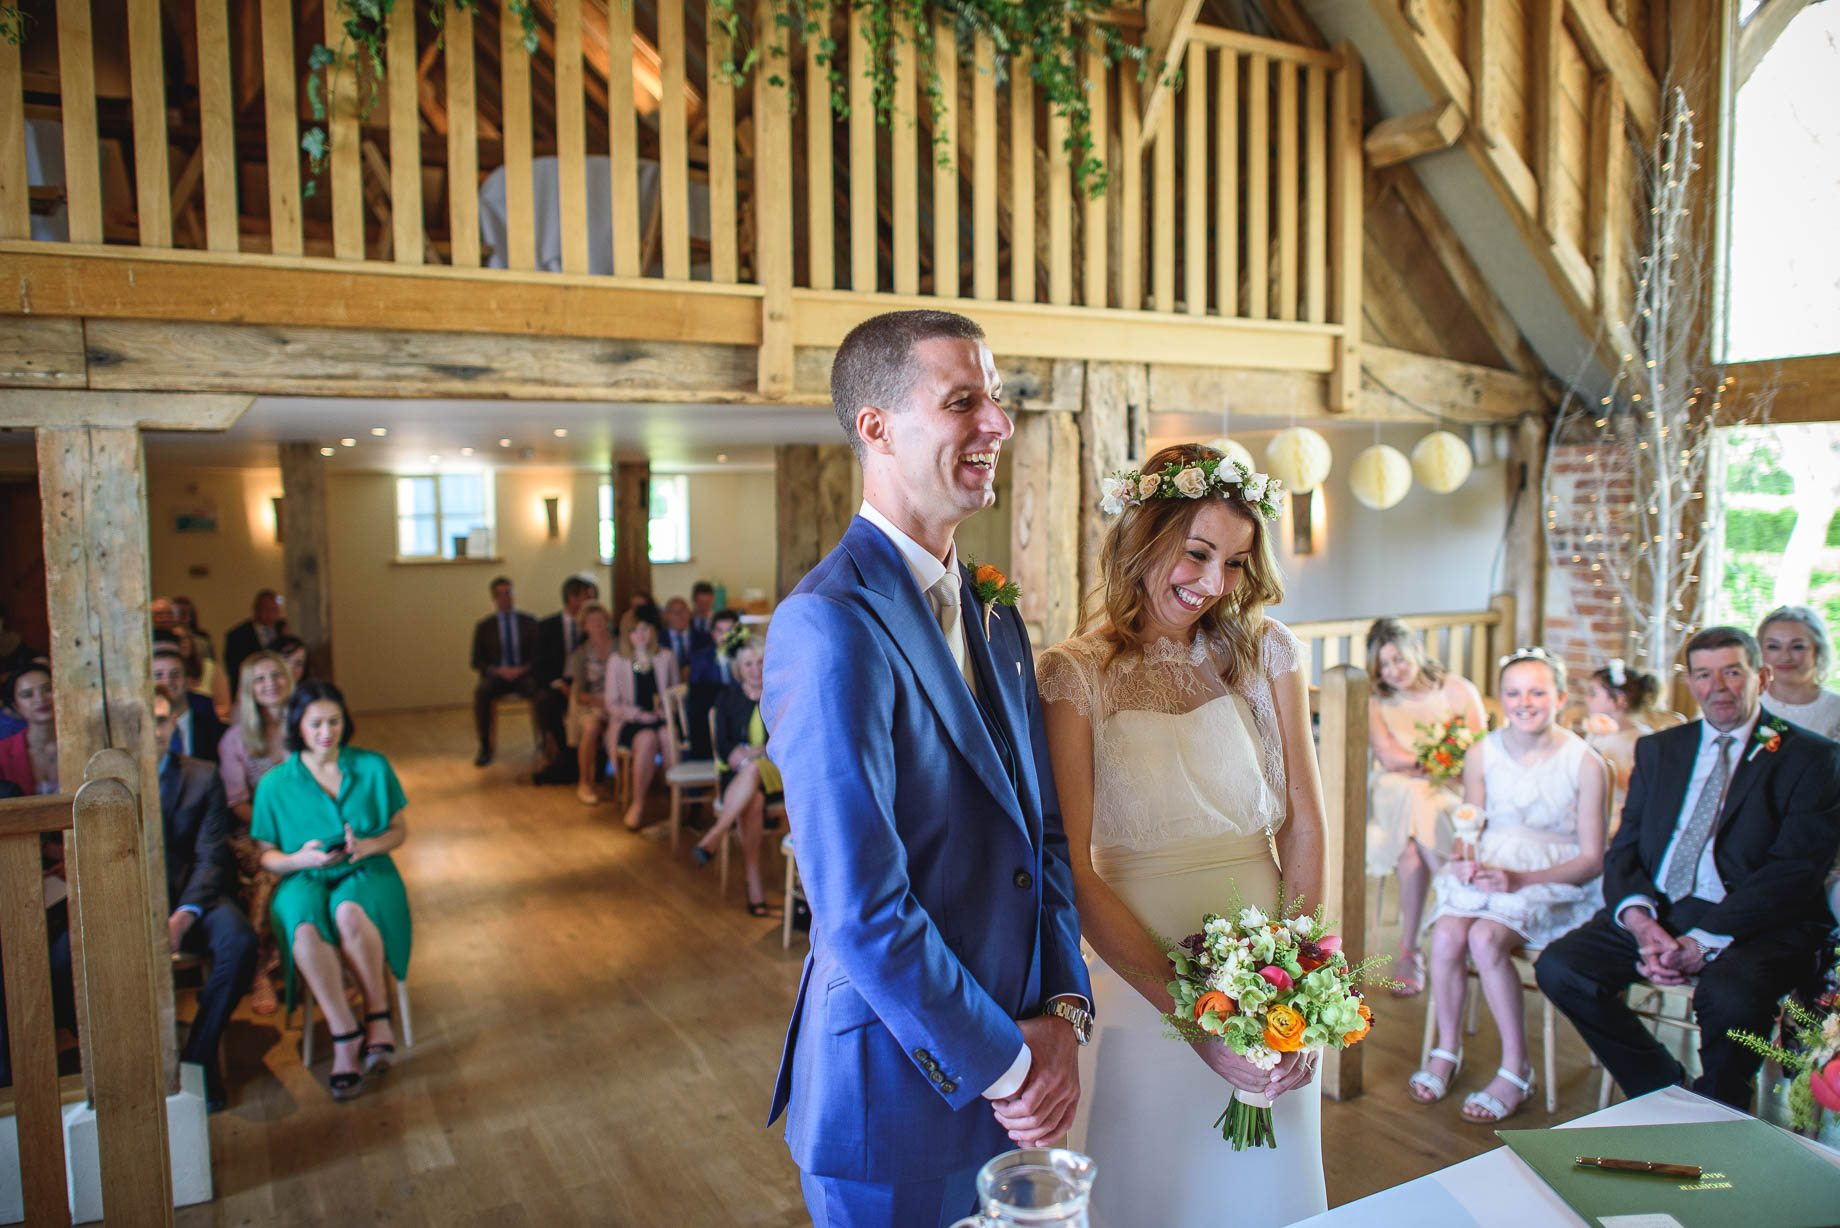 Bury Court Barn wedding photography by Guy Collier - Jo and Jamie (58 of 160)